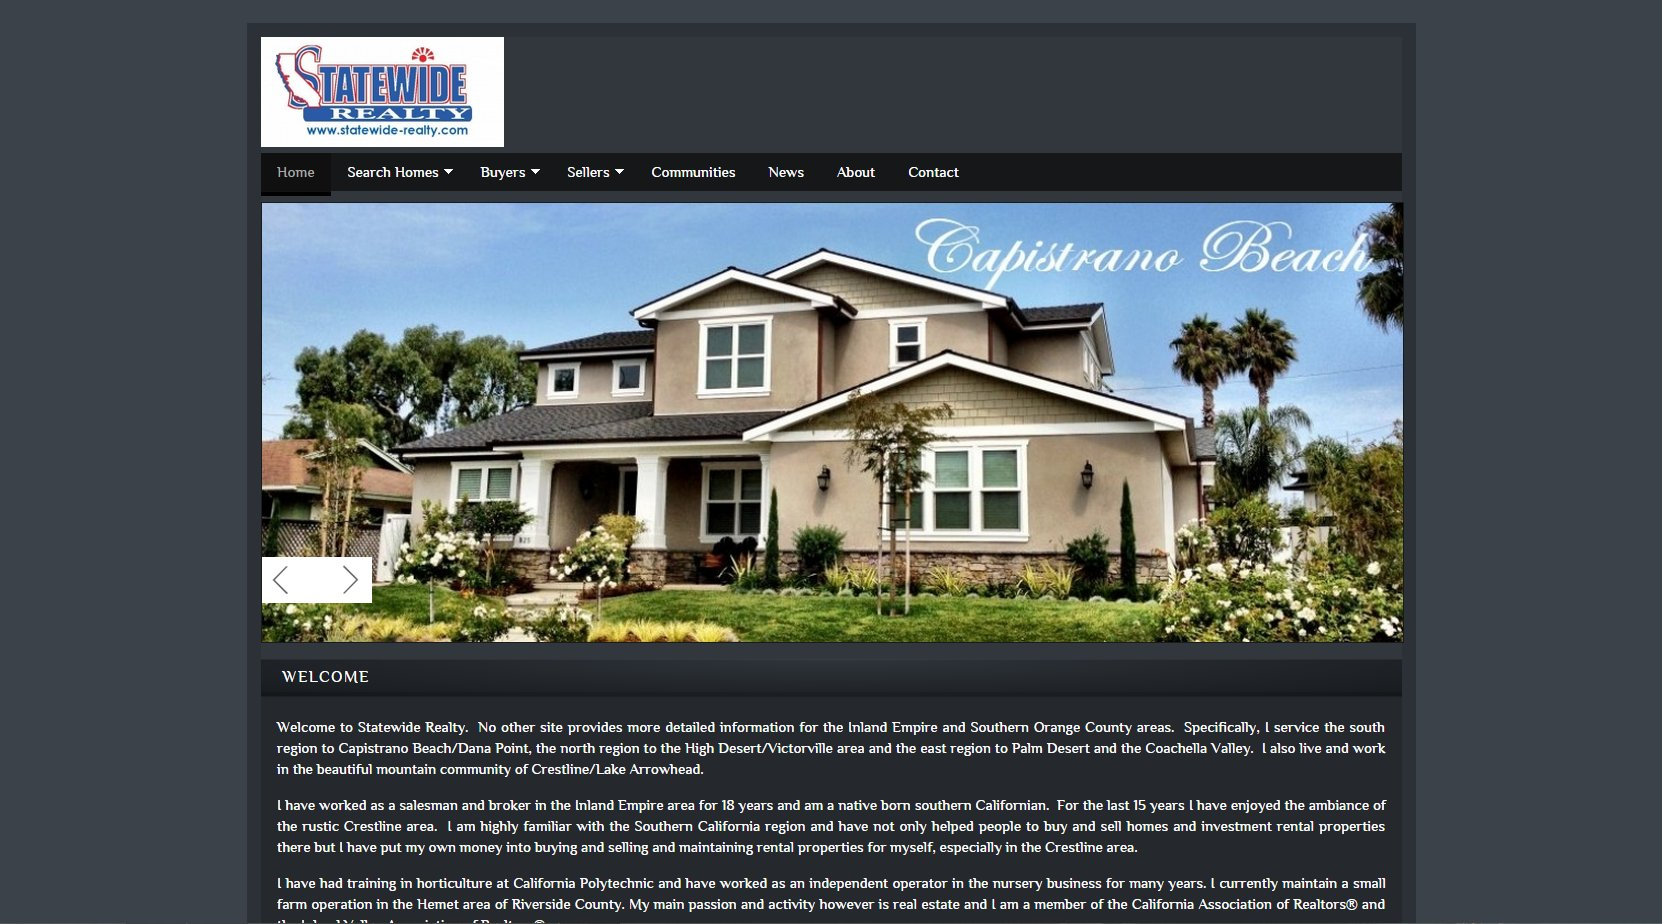 Statewide Realty